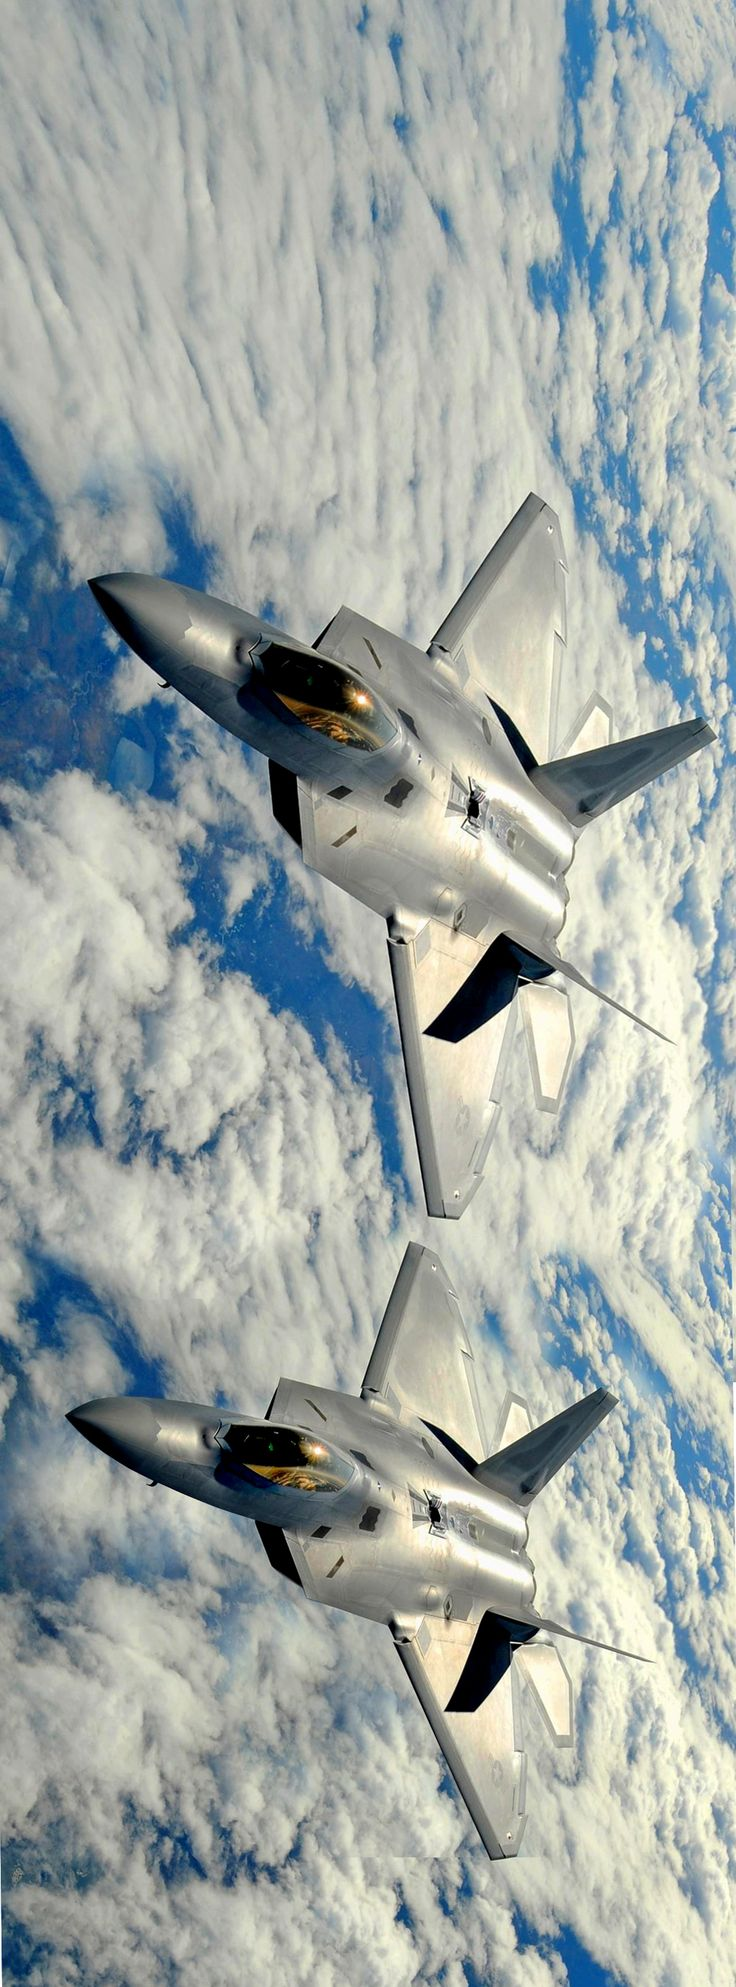 F-22 Raptors.._ Be Respectful. Like Before you RePin _ Sponsored by International Travel Reviews - Worldwide Travel Writers & Photographers Group. Focus on Writing Reviews & Taking Photographs for Travel, Tourism, & Historical Sites clients. Rick Stoneking Sr. Owner/Founder. Tweet us @IntlReviews Info@InternationalTravelReviews.com